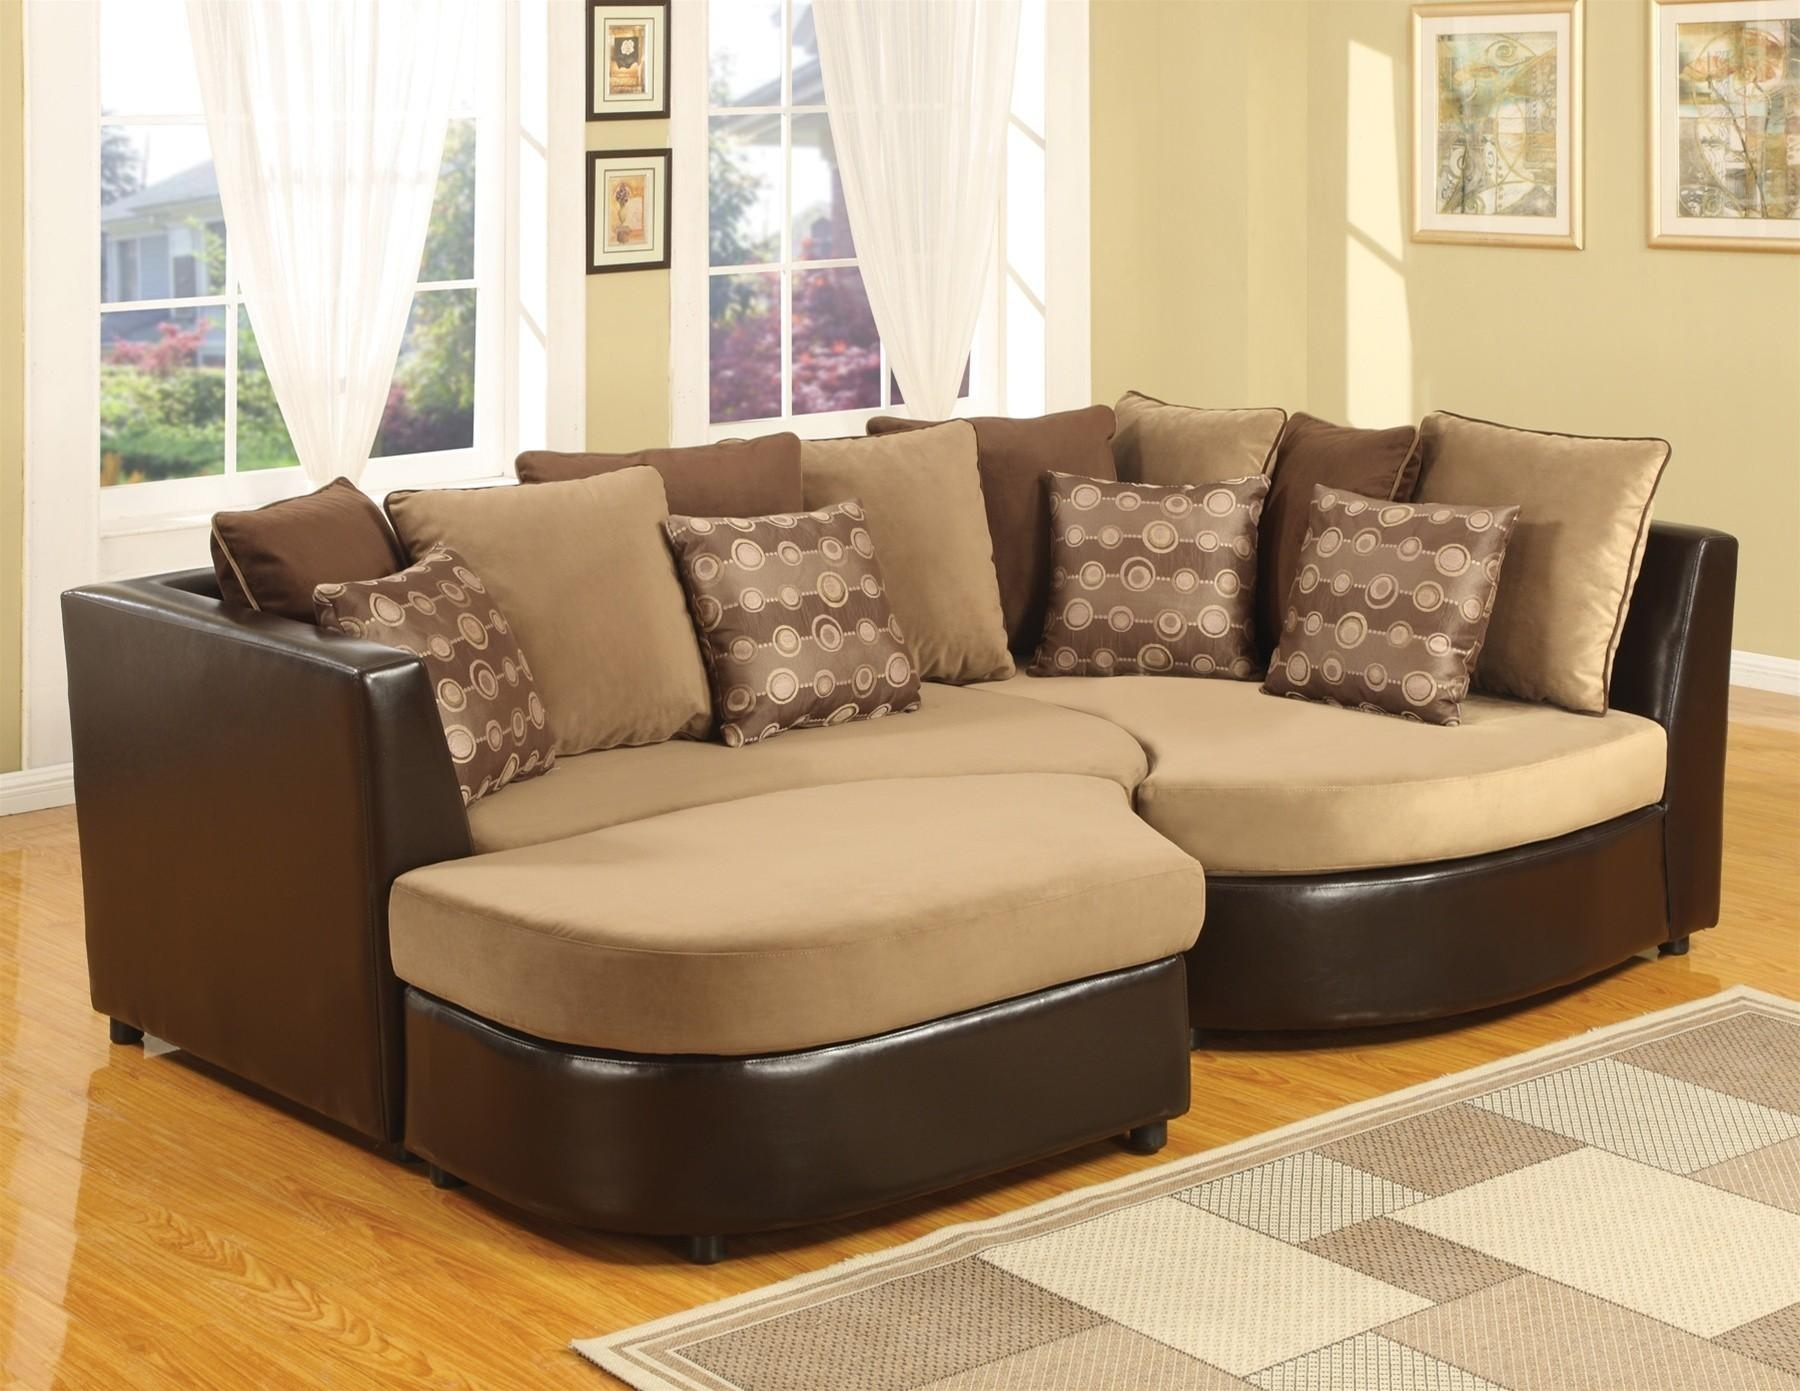 Sofas Center : Oversized Sectional Sofa Fearsome Images Concept Throughout Oversized Sectional Sofa (Image 15 of 20)